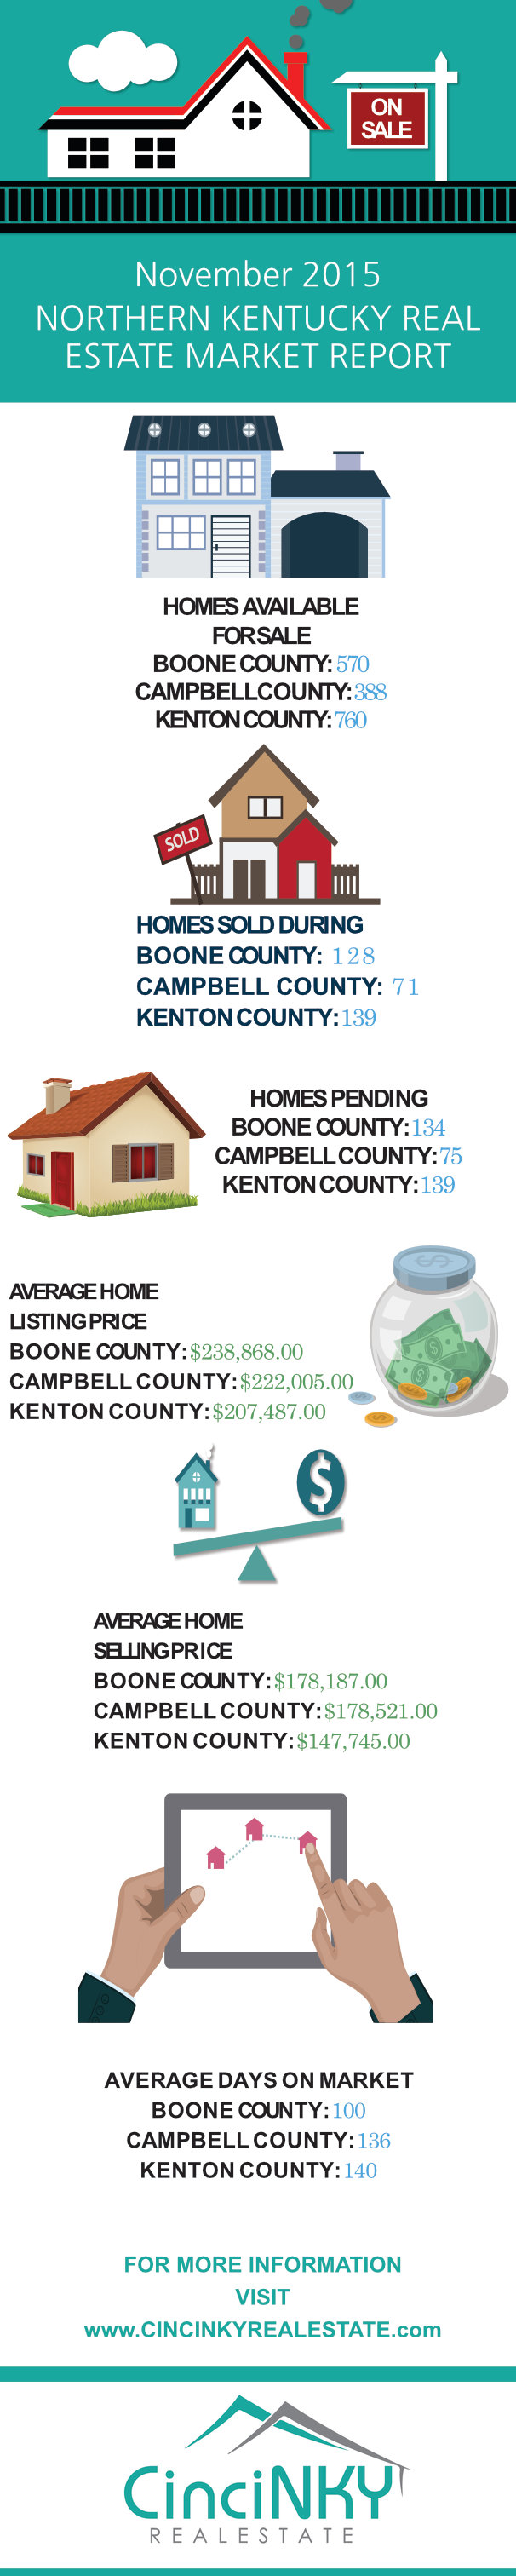 November 2015 Northern Kentucky Real Estate Market Report Infographic